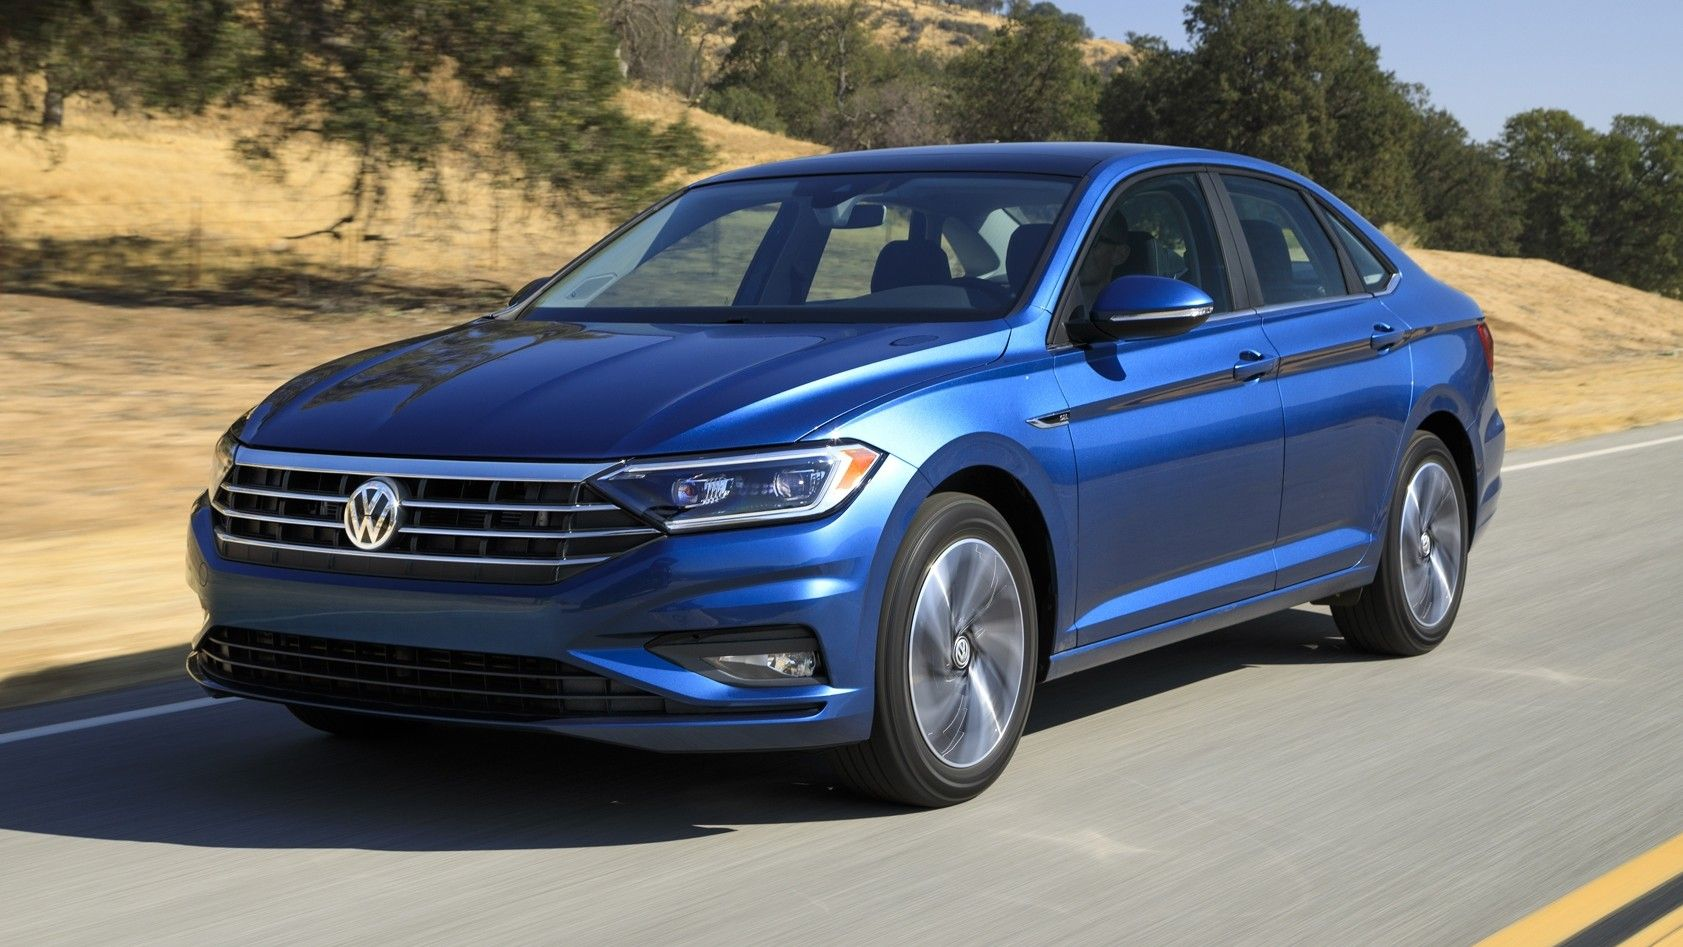 2020 Volkswagen Jetta Front Three-quarter View